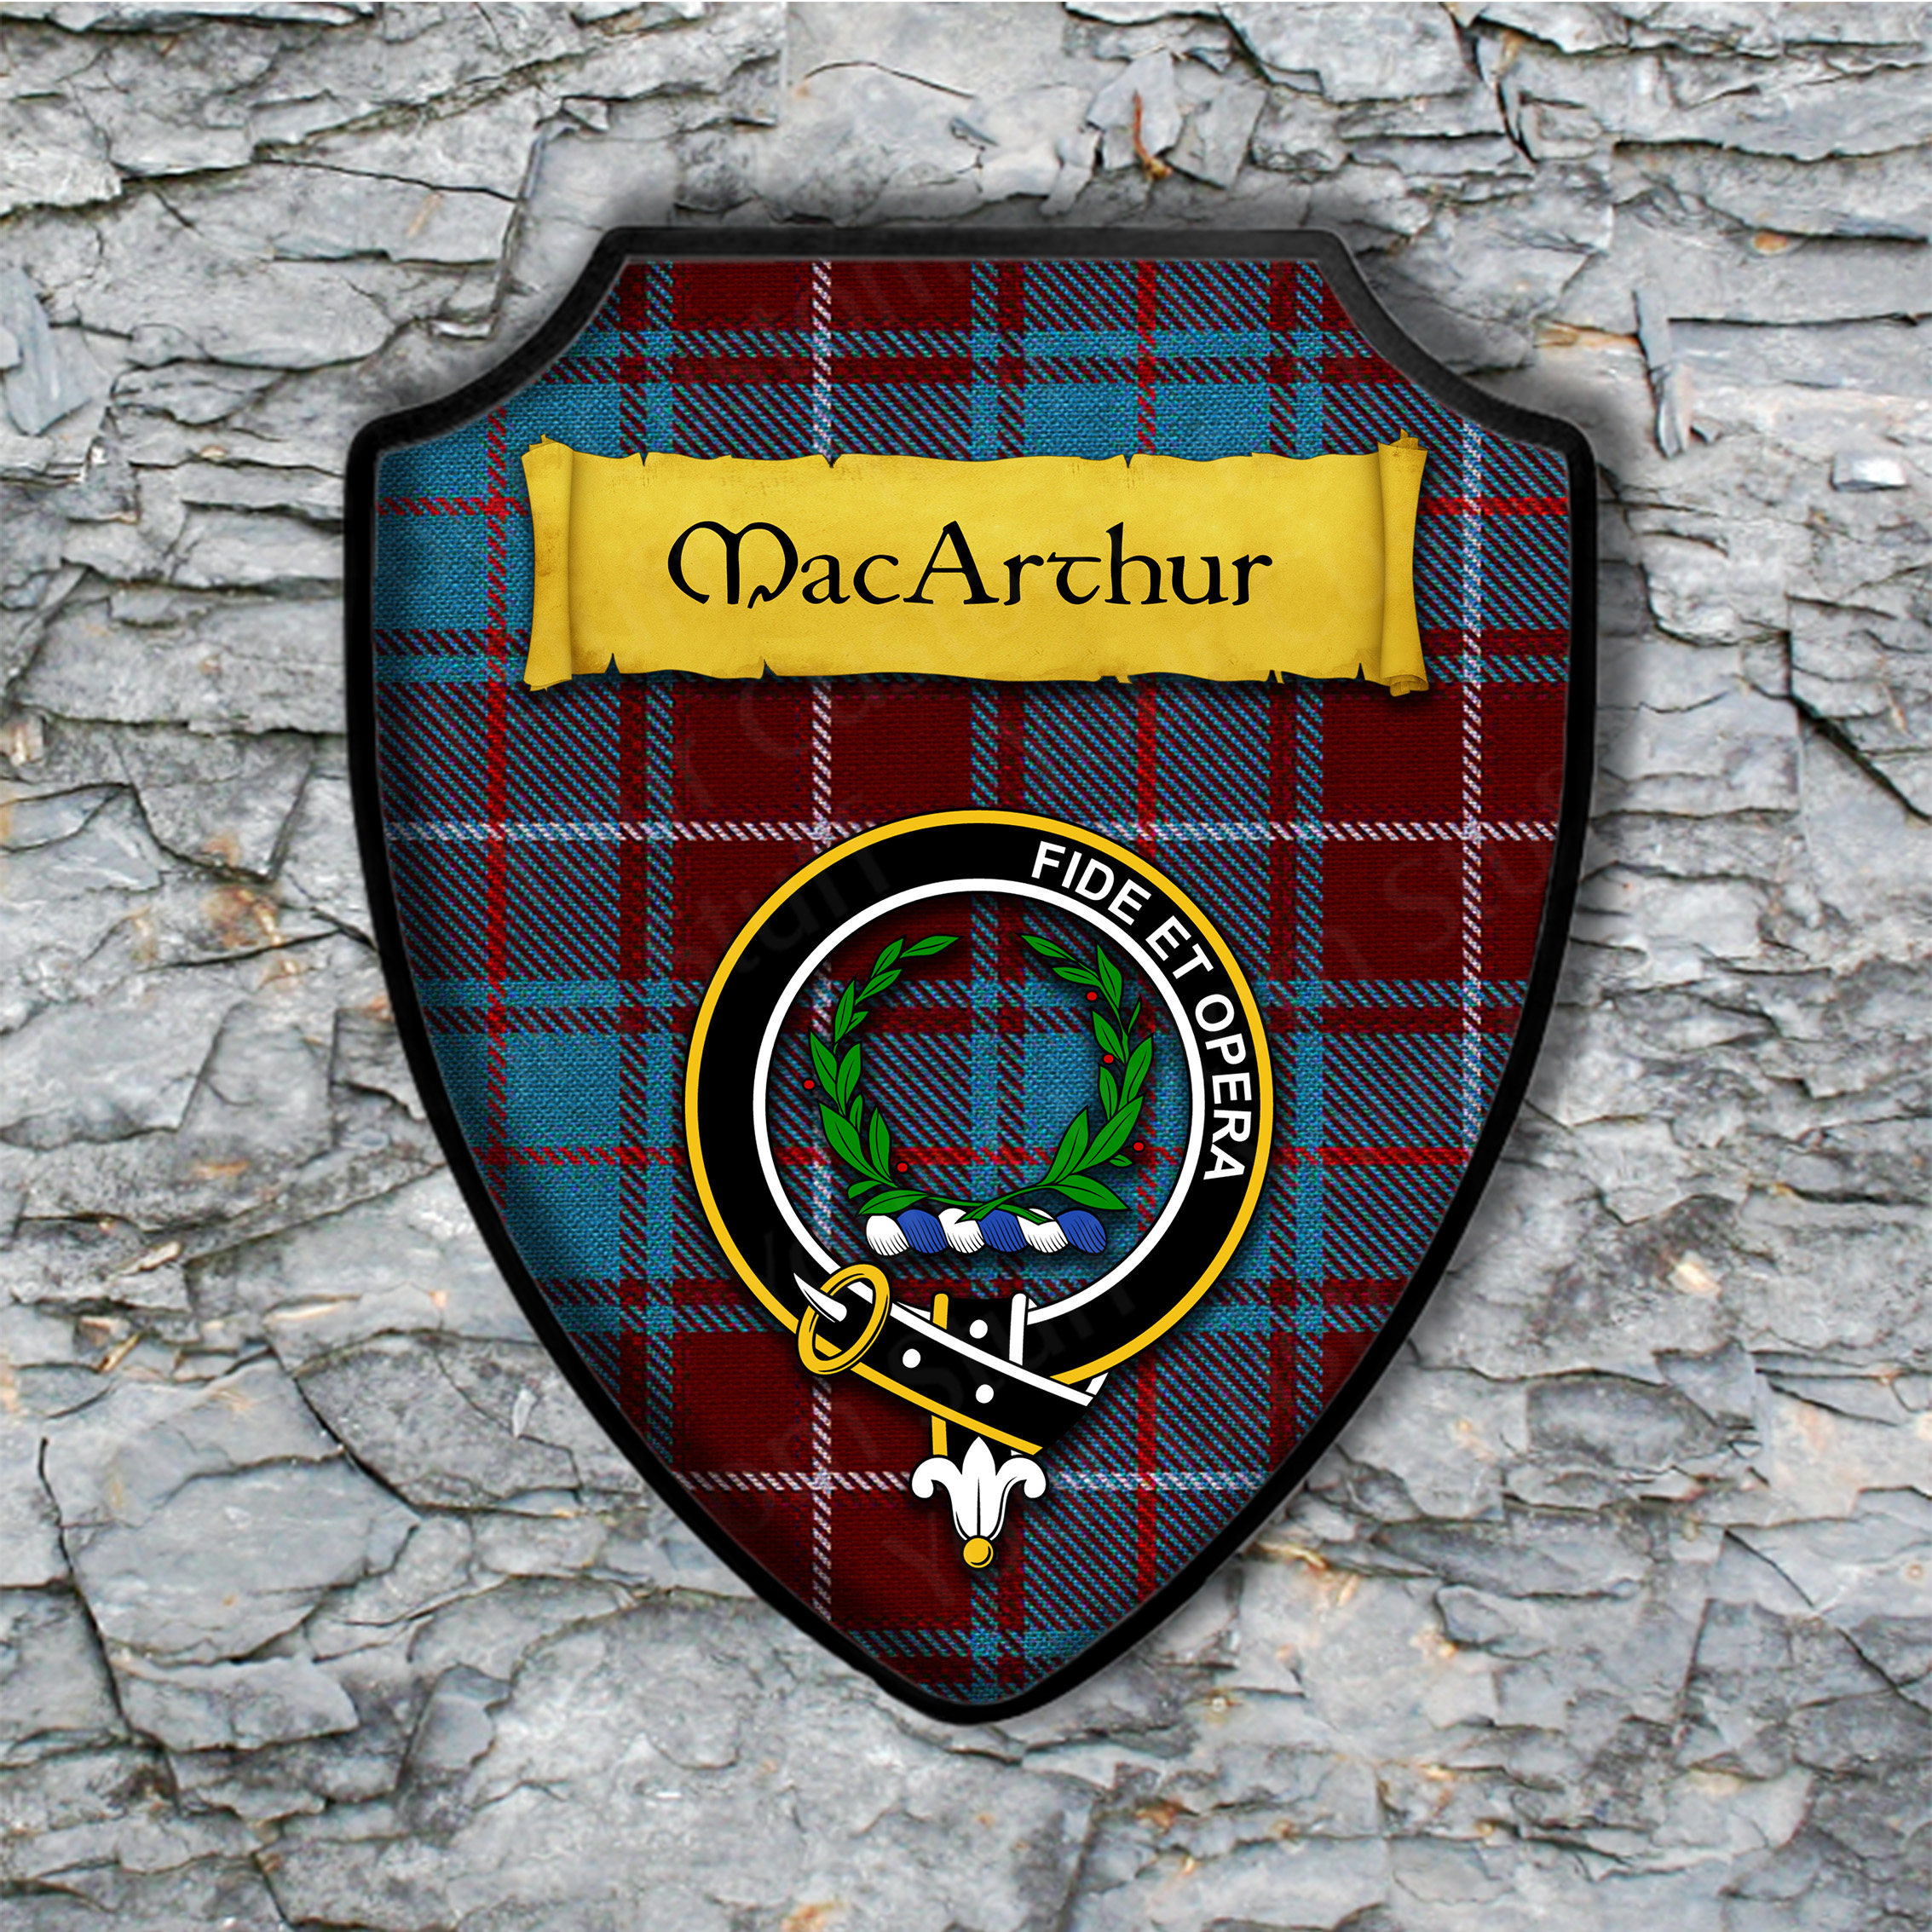 MacArthur Shield Plaque with Scottish Clan Coat of Arms Badge on Clan Plaid Tartan Background Wall Art